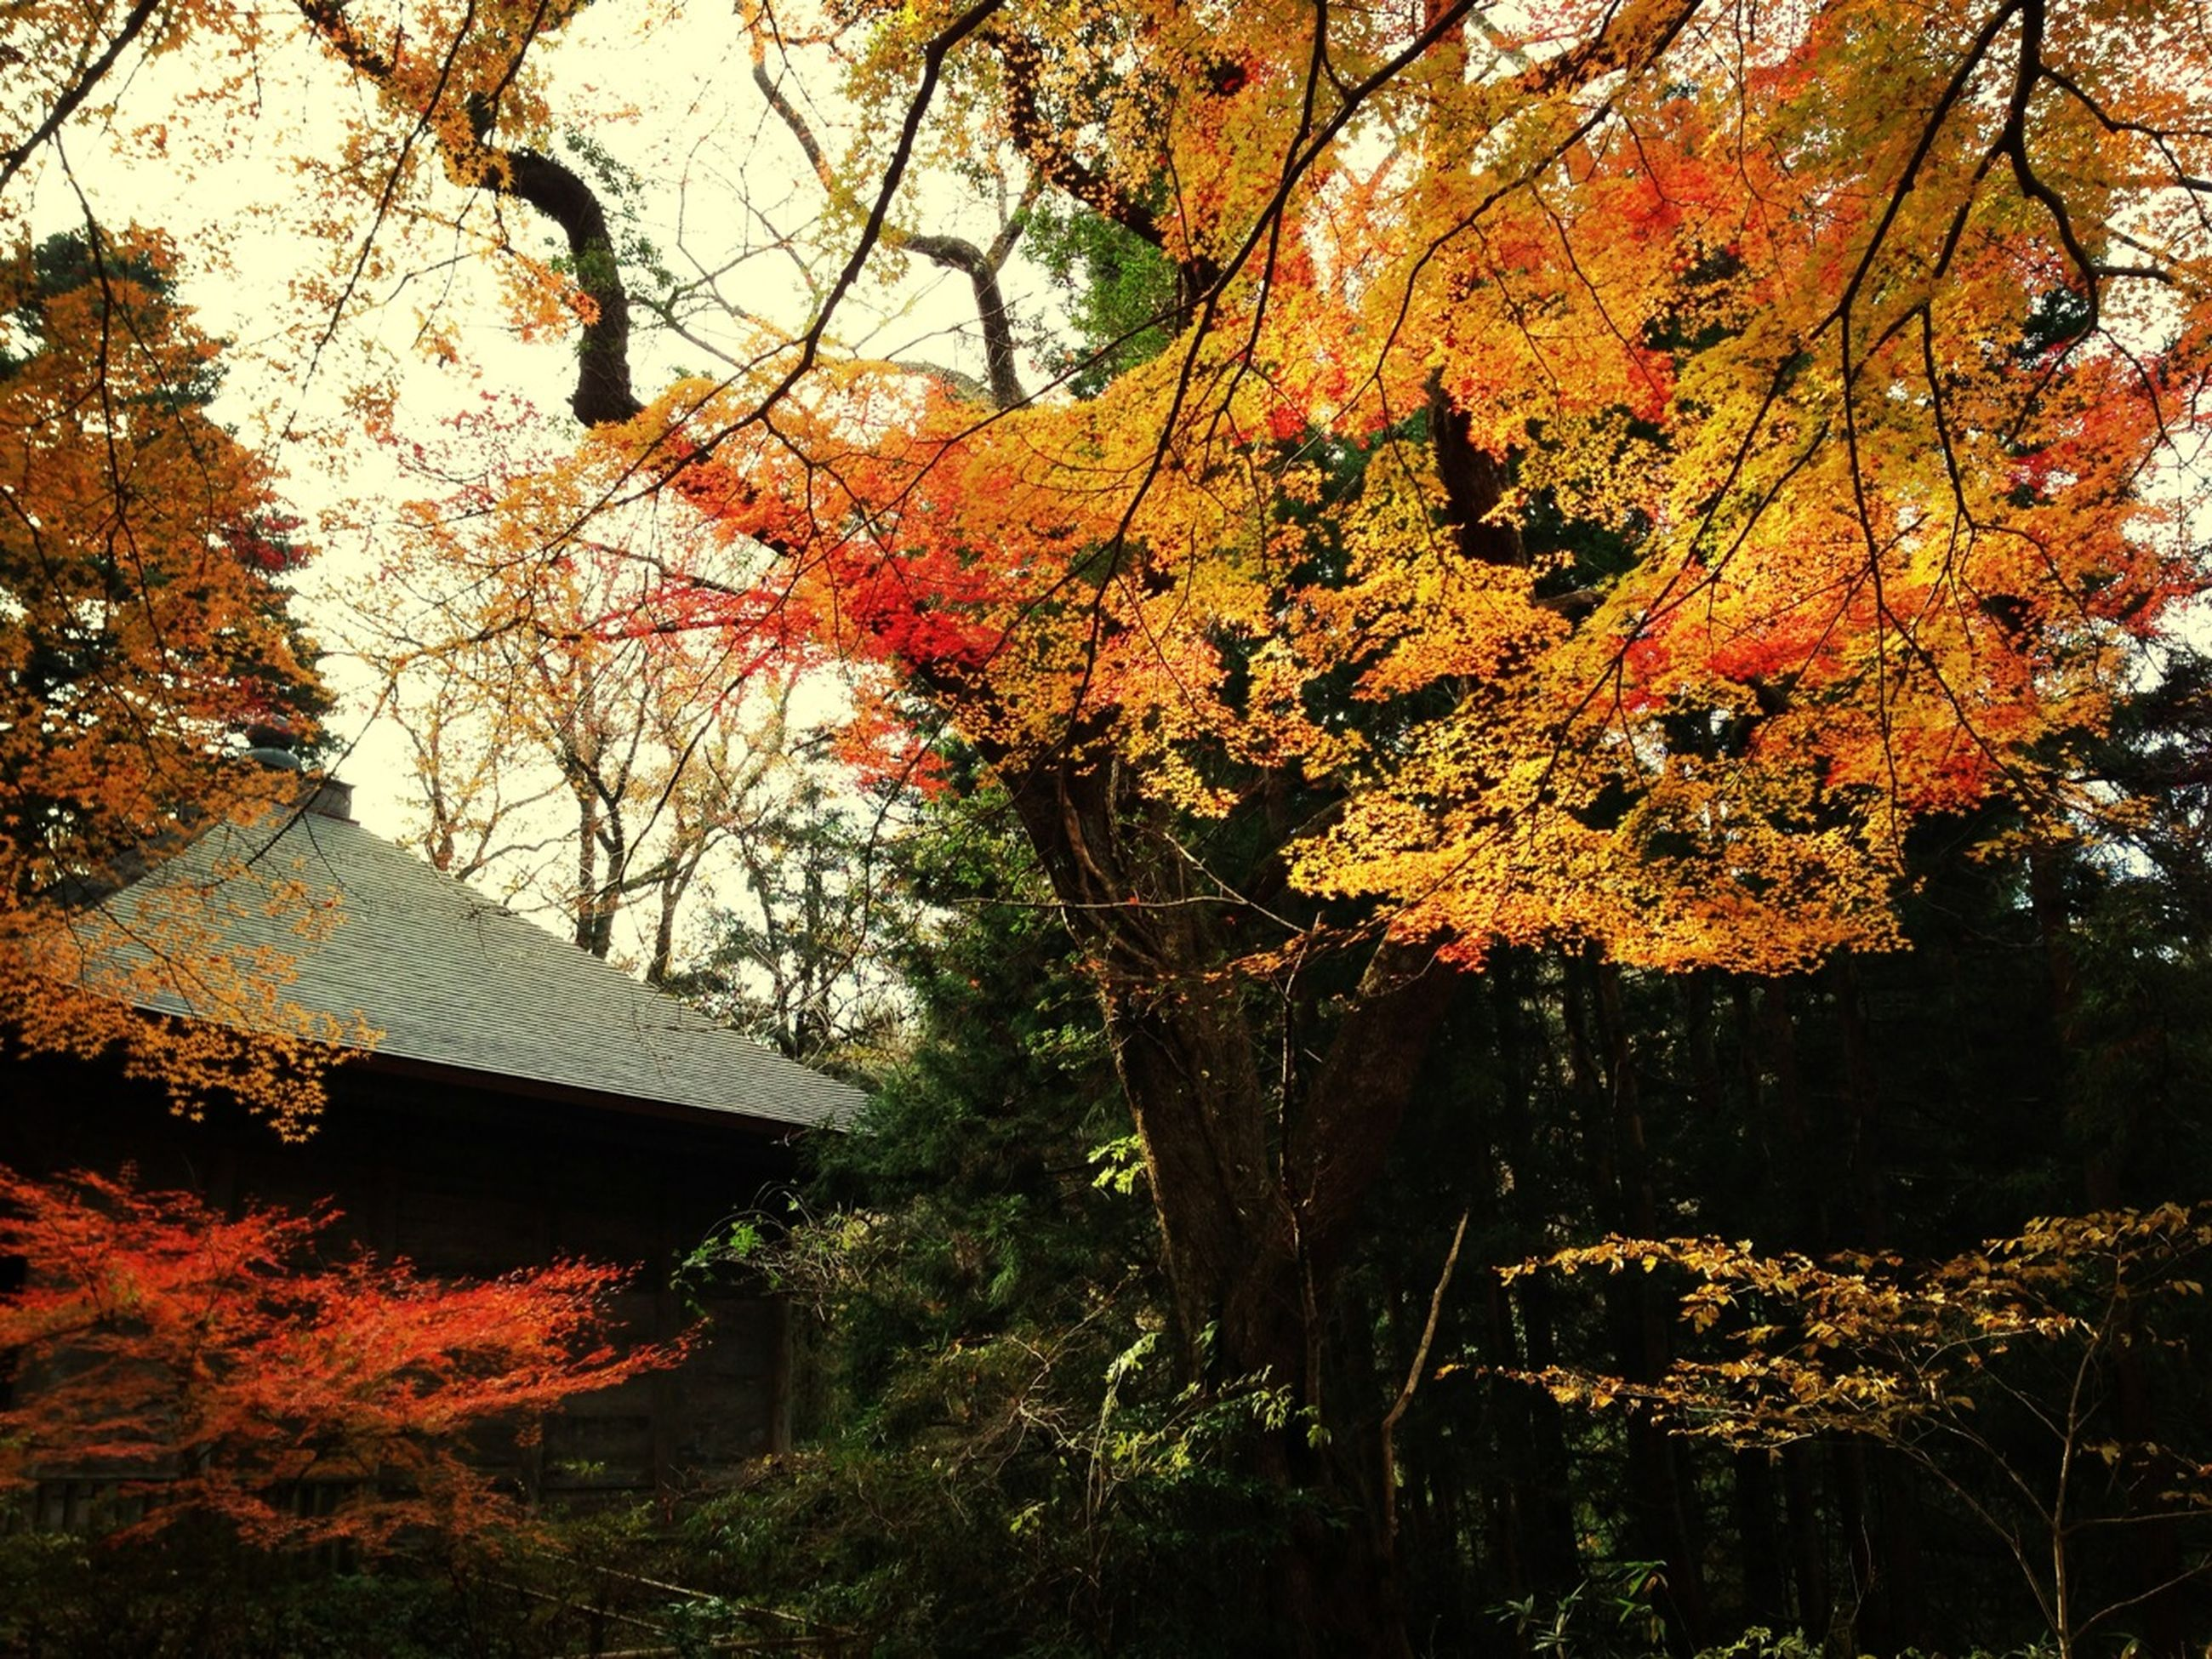 tree, autumn, branch, growth, built structure, building exterior, change, architecture, season, tree trunk, nature, house, leaf, beauty in nature, tranquility, orange color, outdoors, day, no people, low angle view